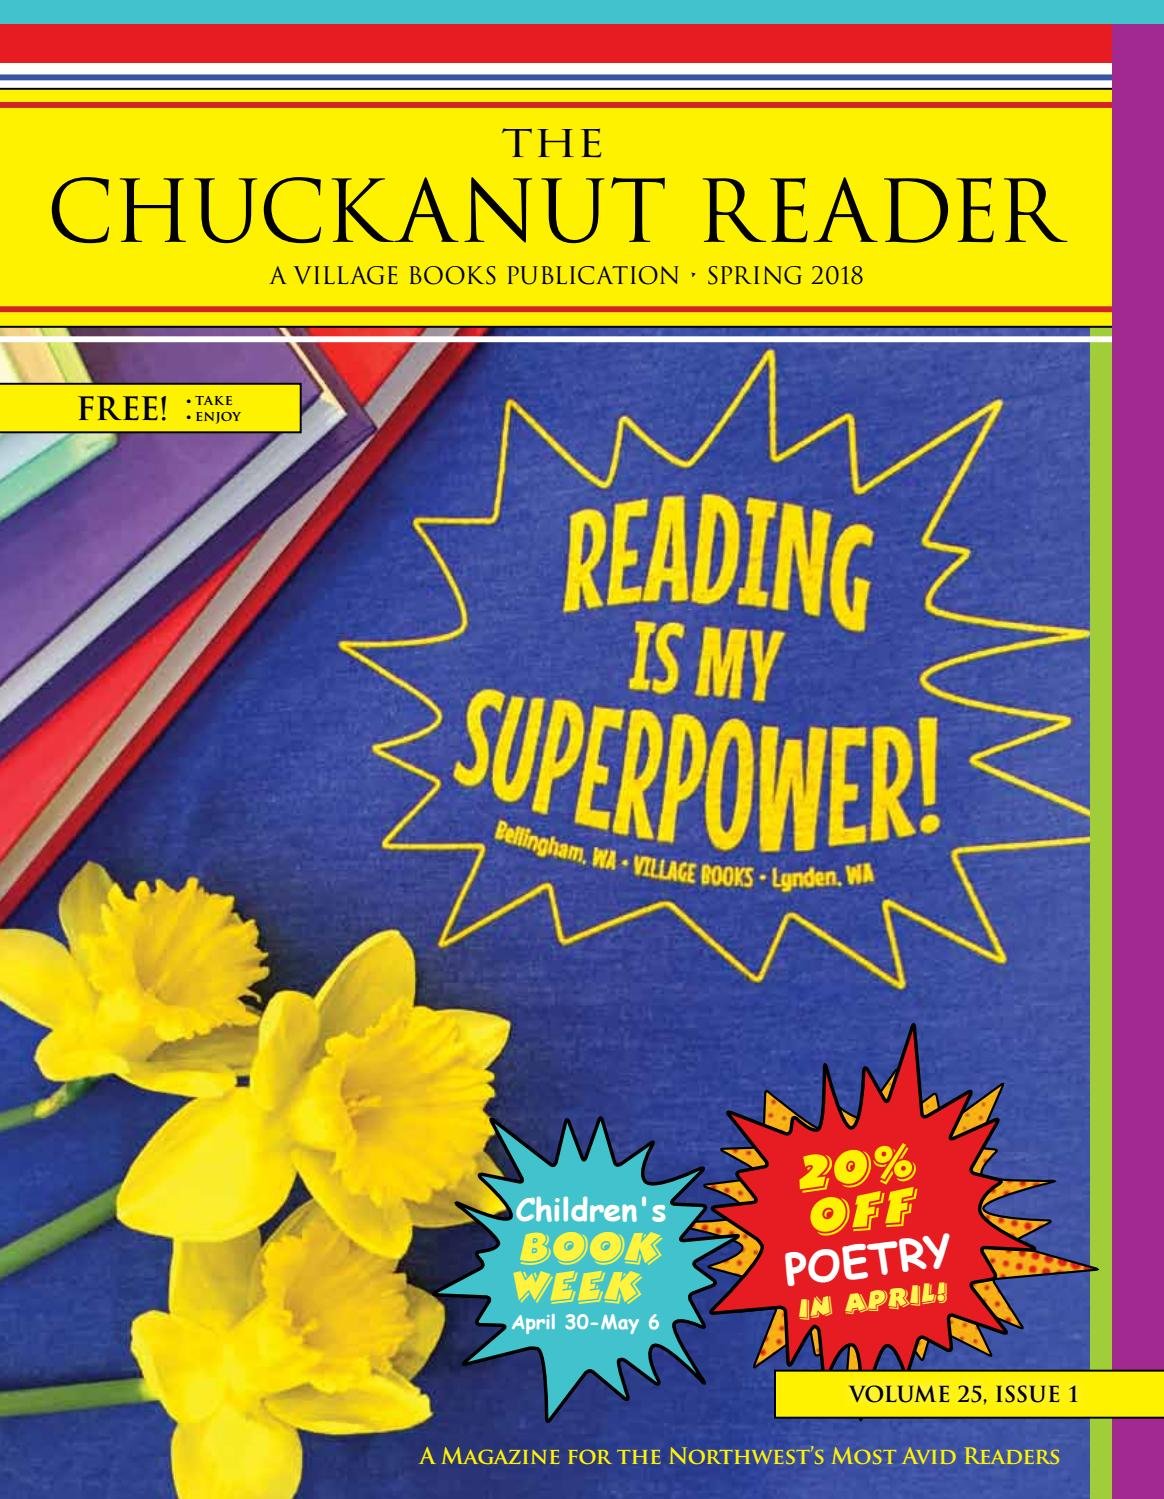 Chuckanut reader spring 2018 by village books paper dreams issuu fandeluxe Image collections